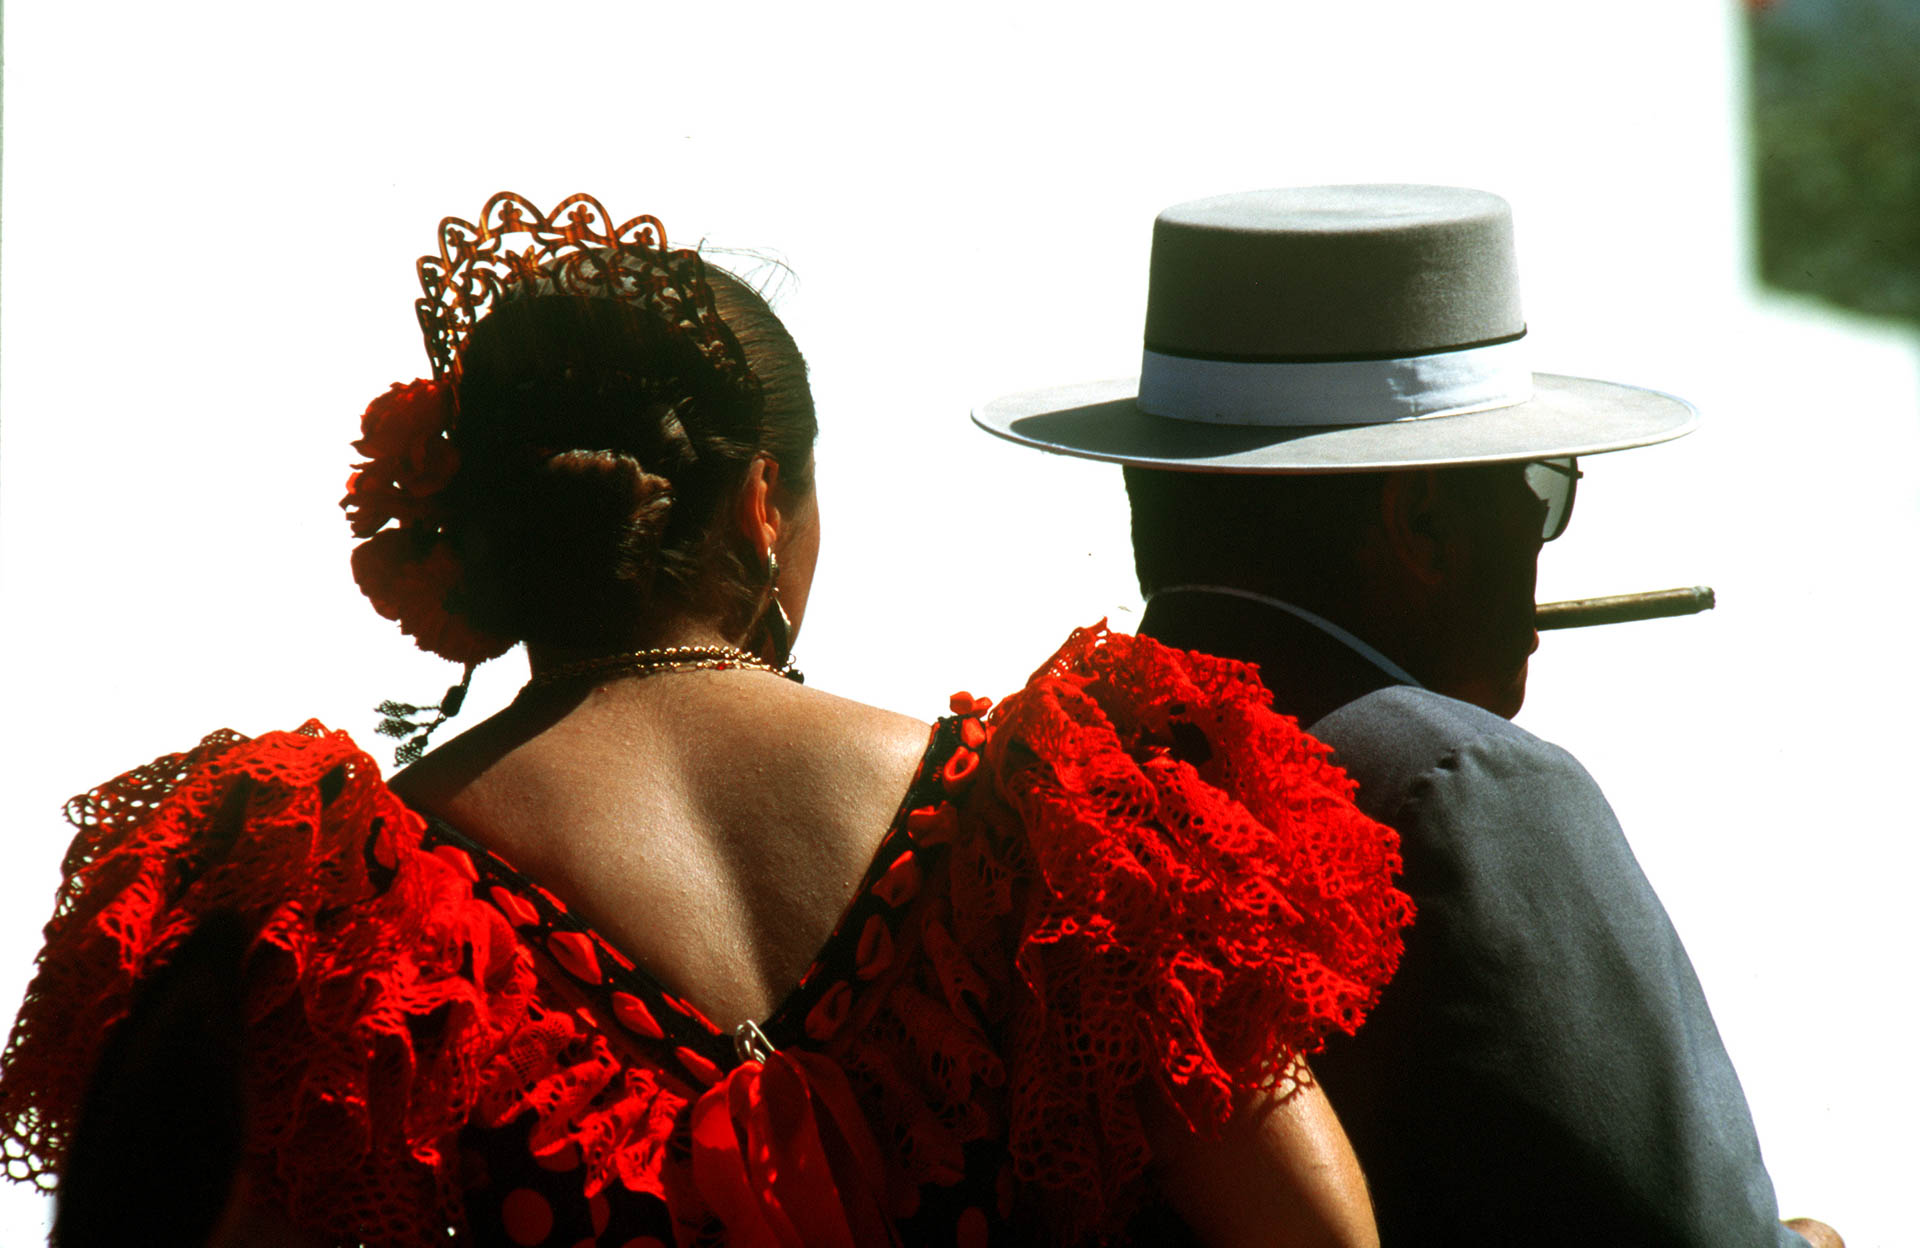 The miracle around the world: El Rocio, a couple on horseback wearing traditional costumes of Sevilla.